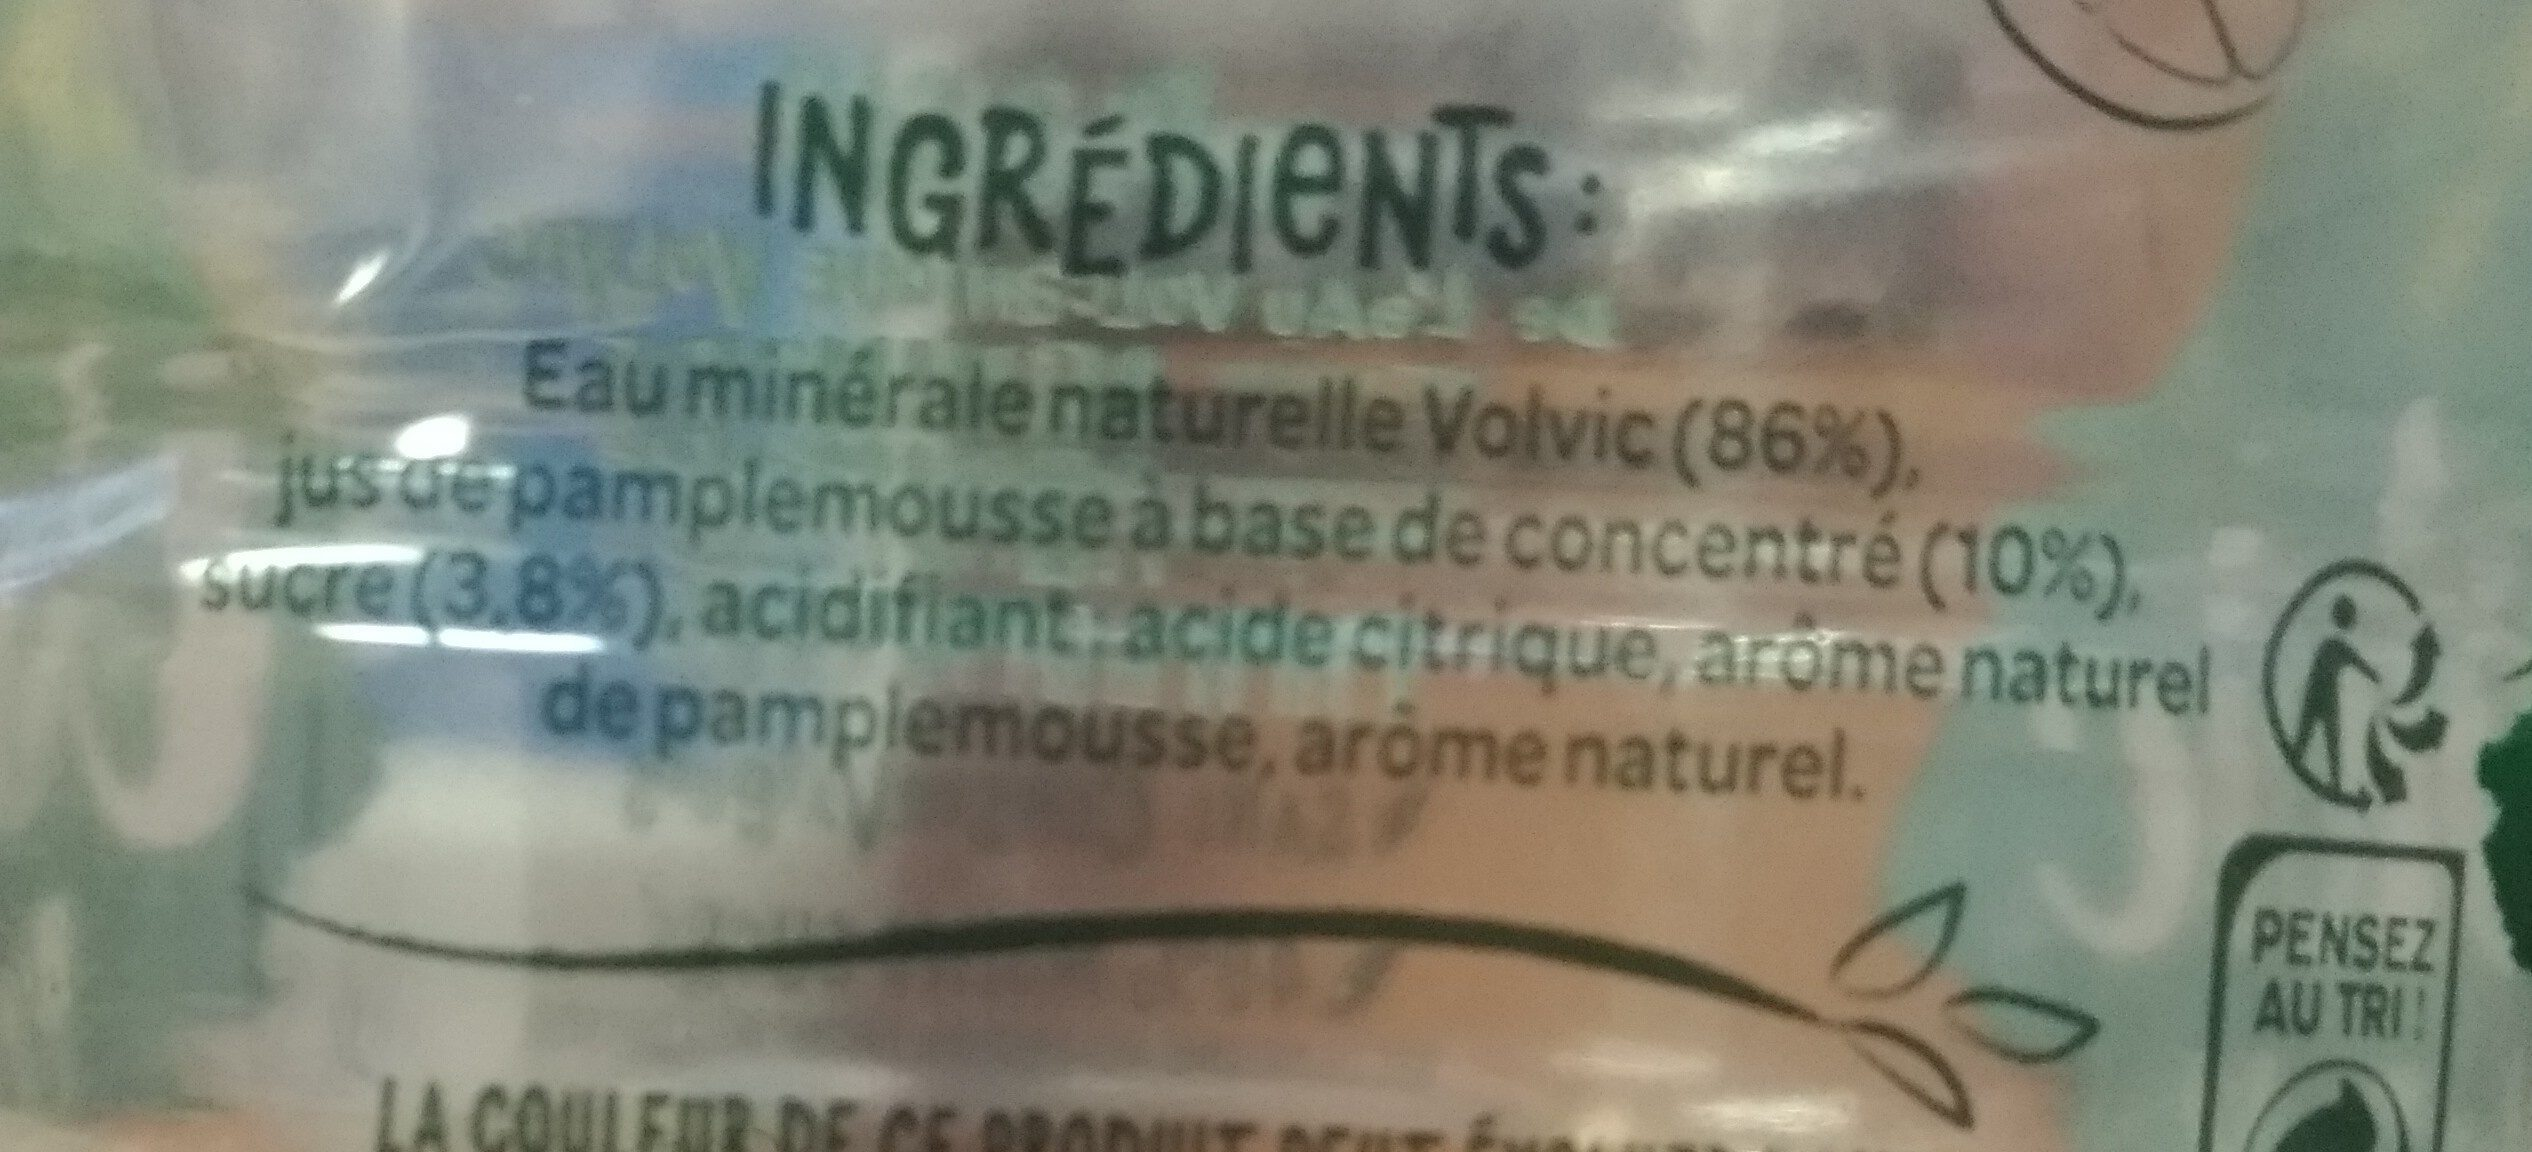 Volvic Juicy agrumade pamplemousse - Ingrédients